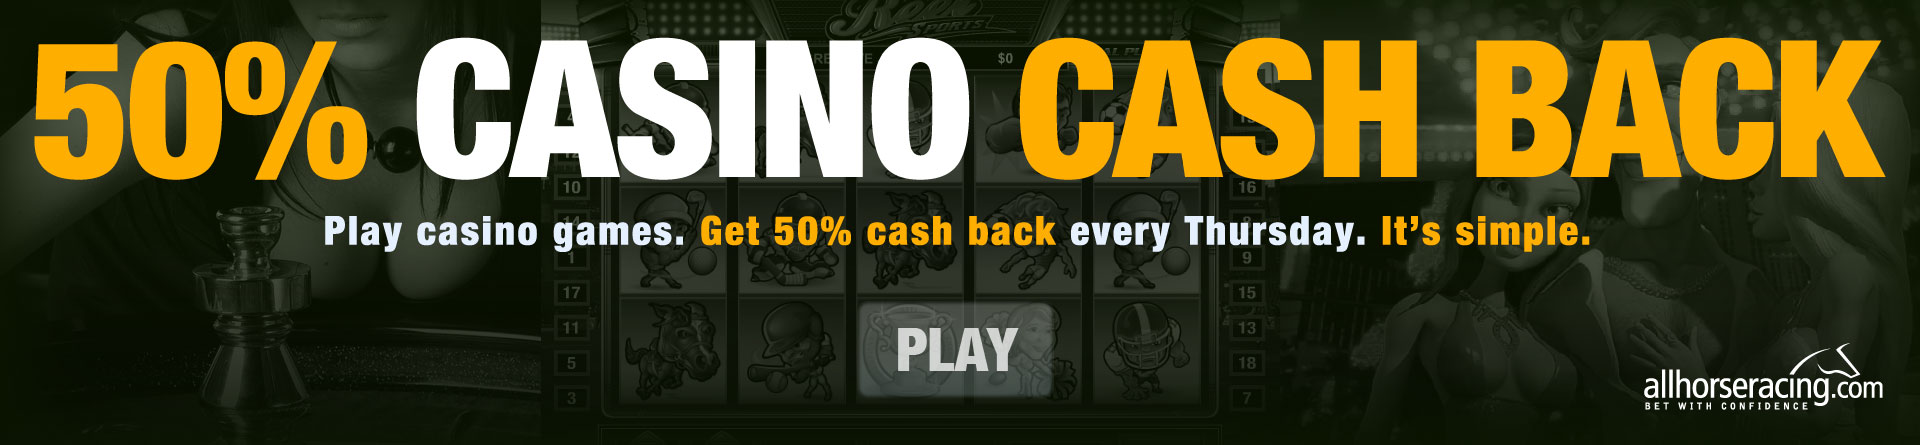 Get 50% Cashino Cash Back